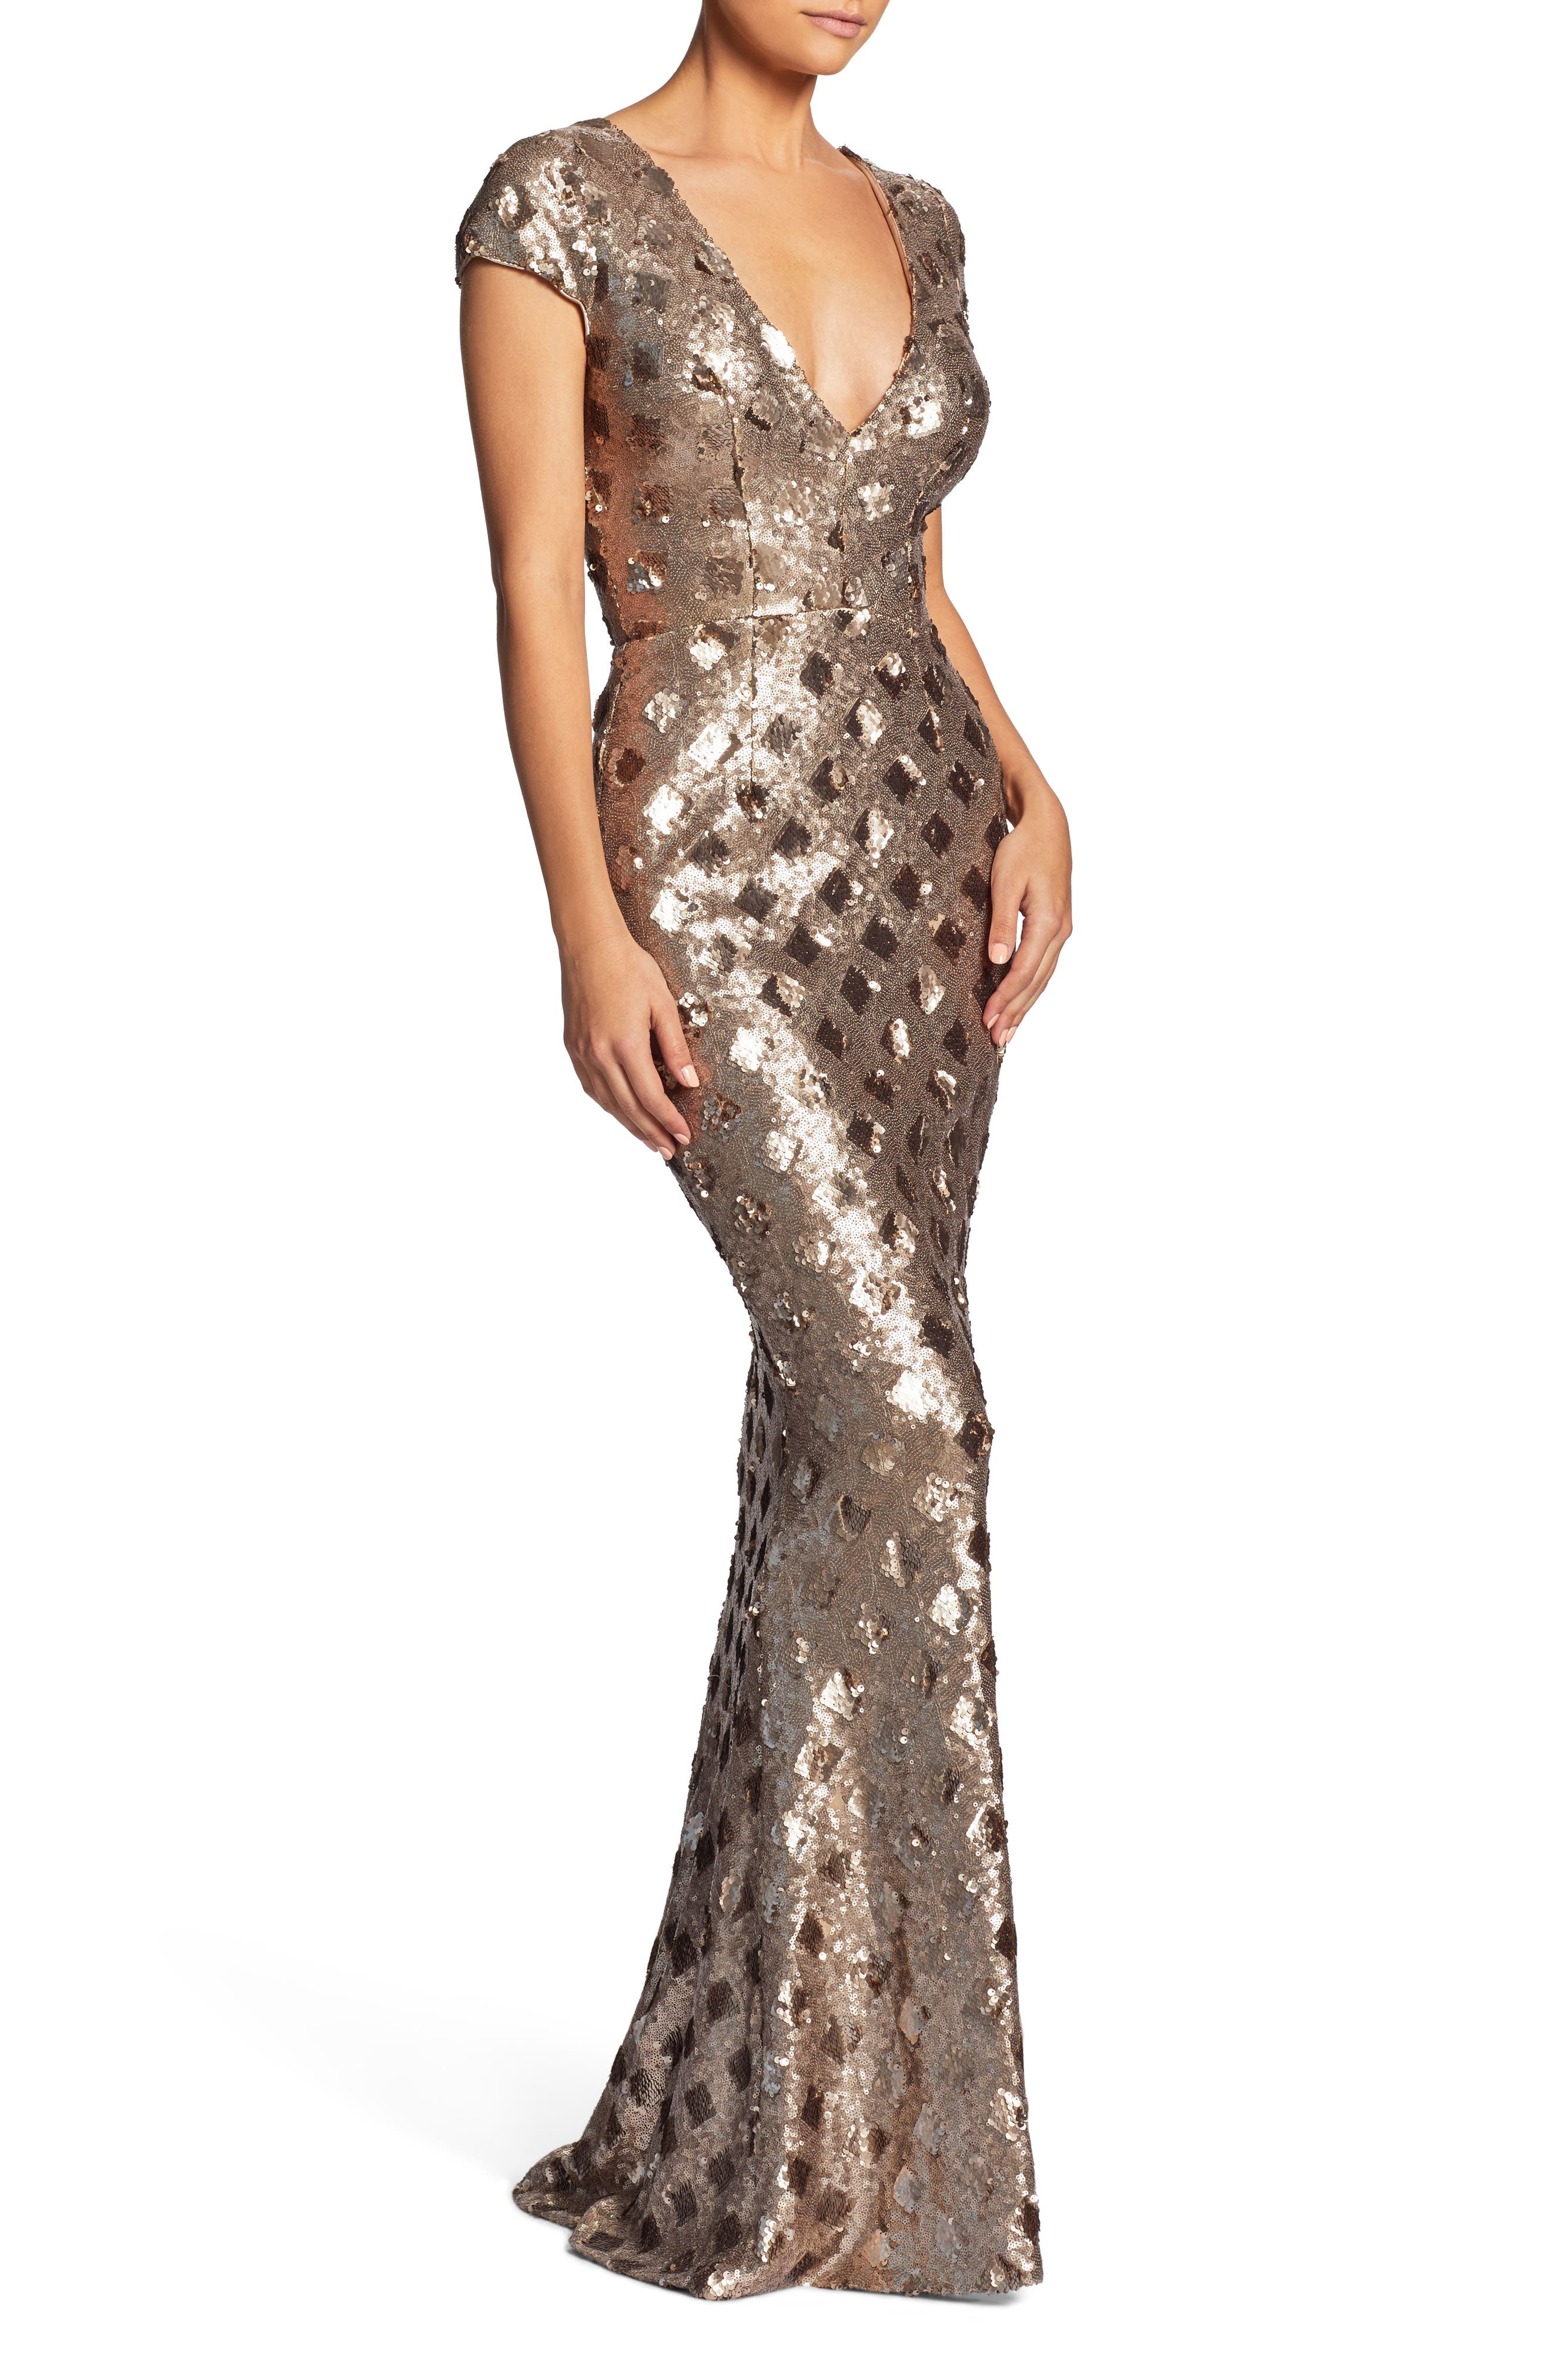 DRESS THE POPULATION,                             Lina Patterned Sequin Trumpet Gown,                             Alternate thumbnail 3, color,                             710